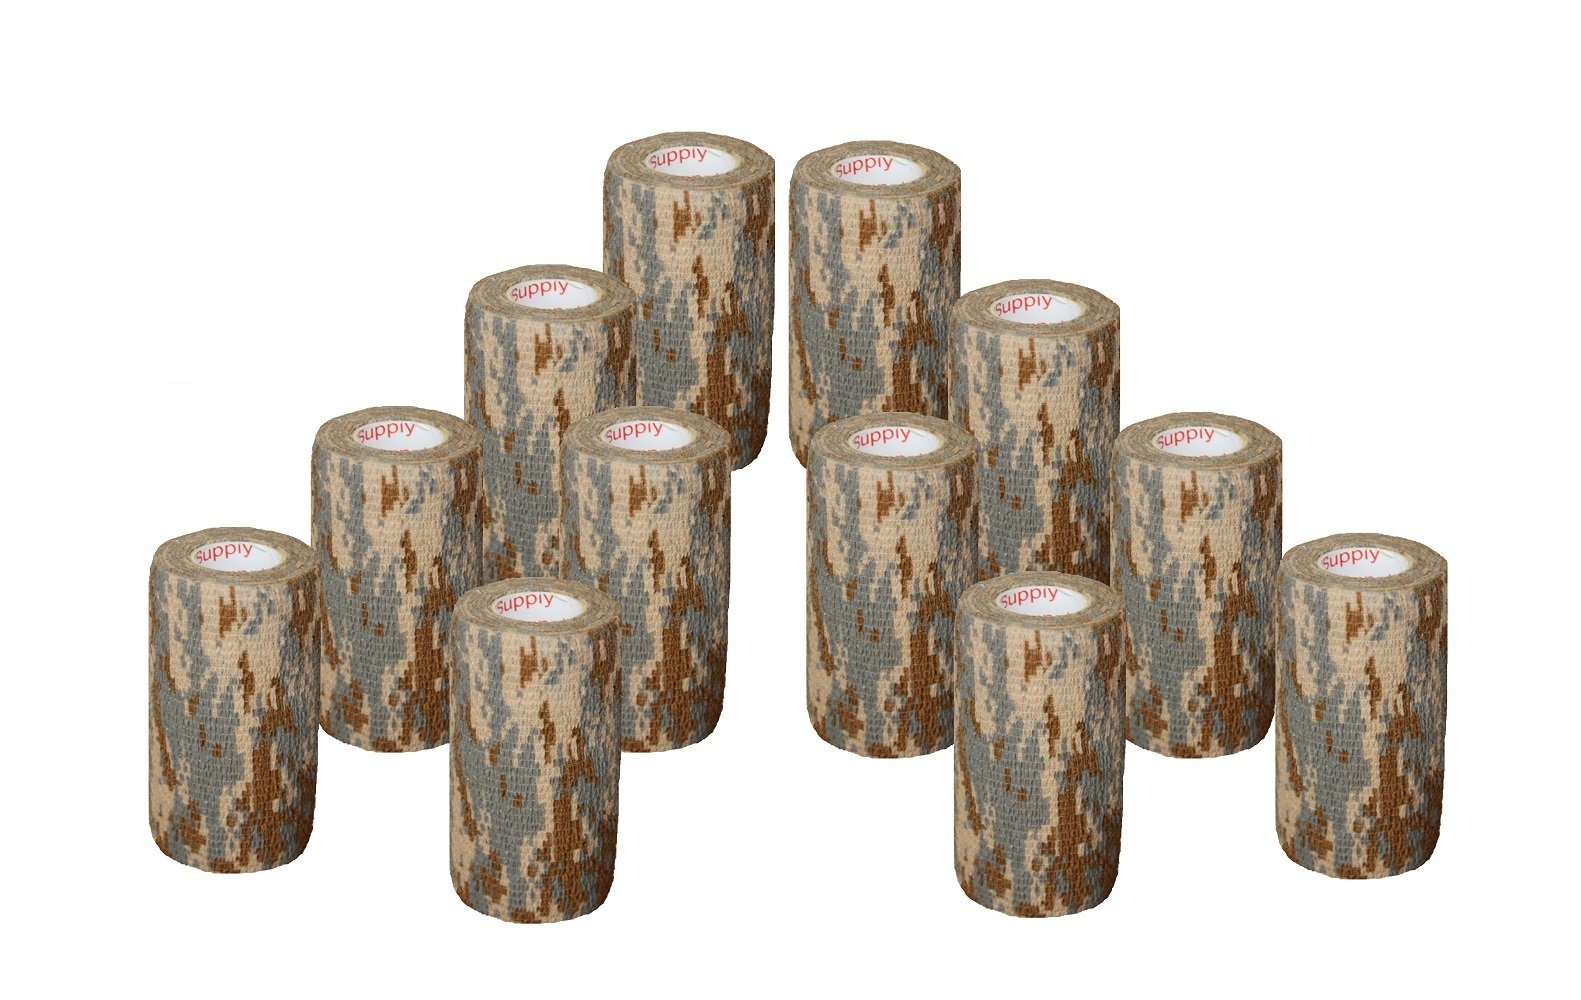 "12 Pack Camo Tape 2"", 3"" or 4'' inch x 15' Feet Self Adhesive Adherent Tactical Stealth Non Woven Fabric Stretch Bandage Vet Wrap Rap Protective Camouflage Tape for Outdoor Military - Woodland"